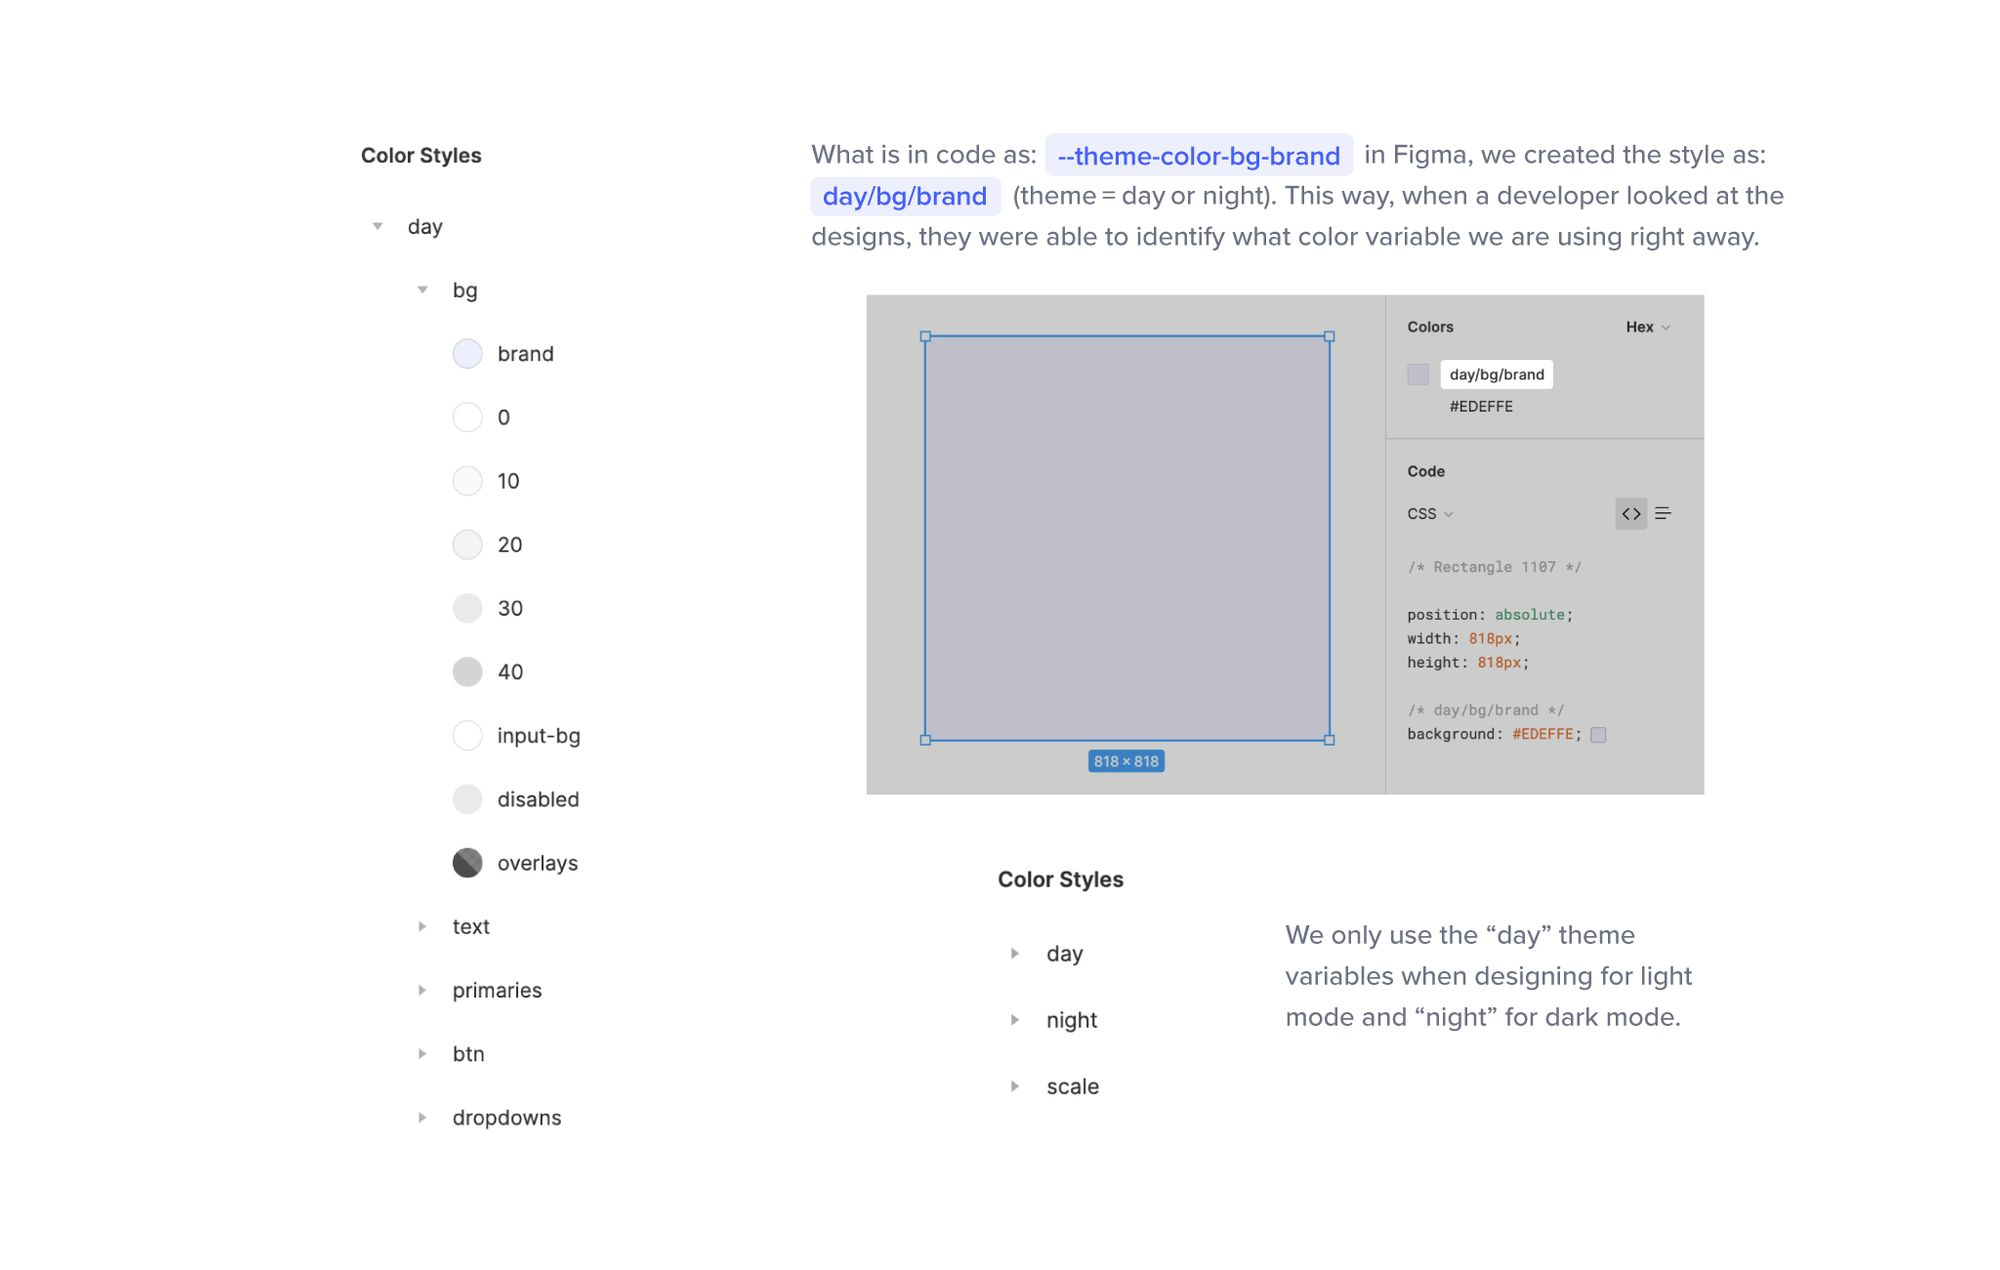 Image showing how the colors and theme variables were transferred to Figma